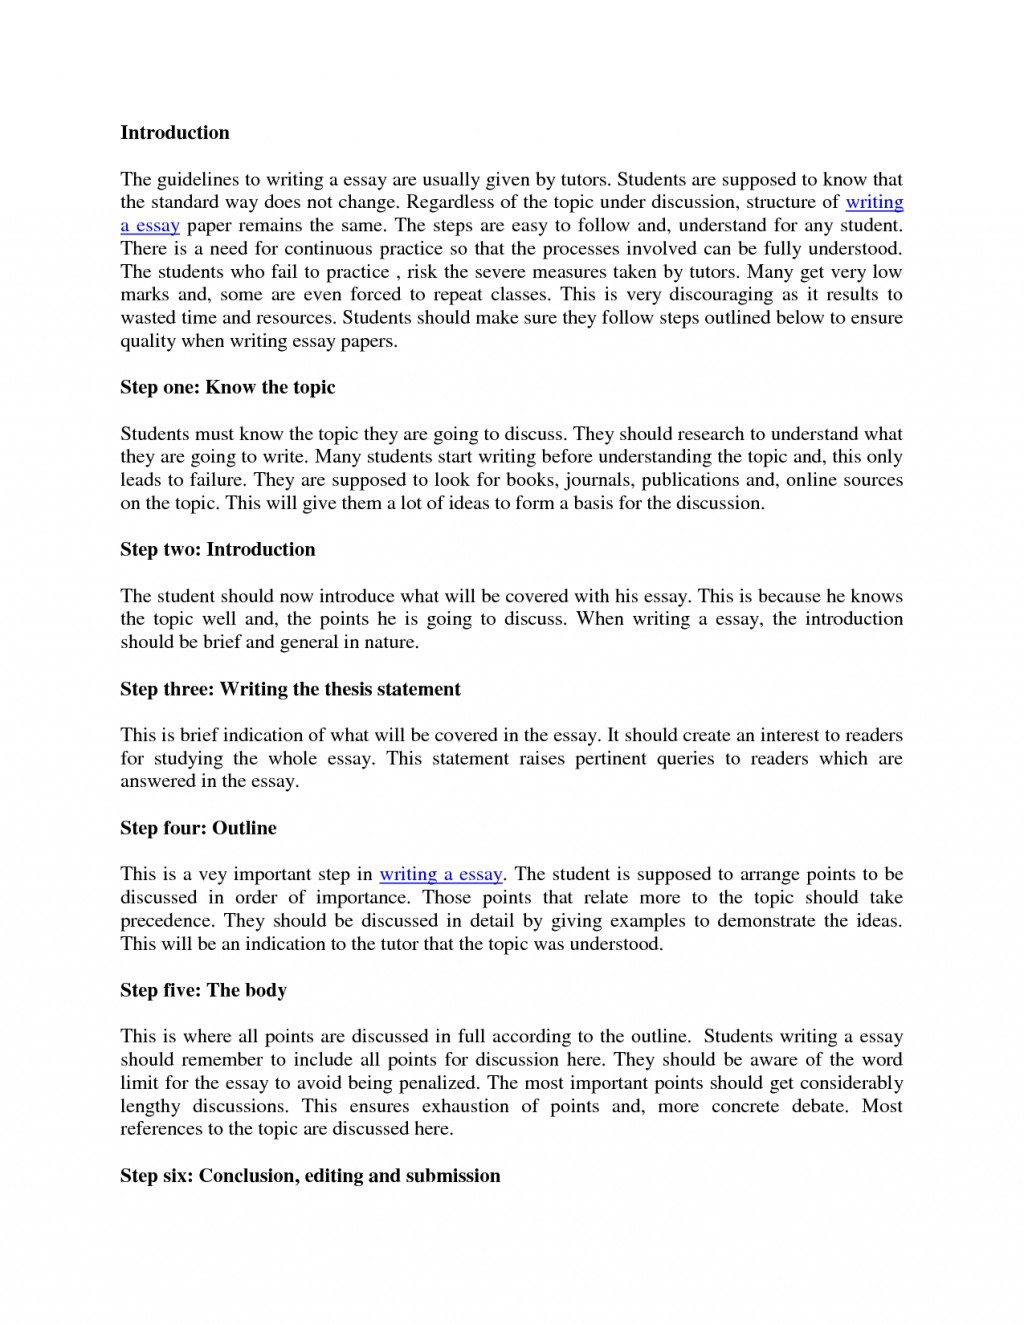 008 Xolufi2epx Essay Example Easy Way To Write Excellent An Argumentative How Analytical In Ielts Task 2 Large